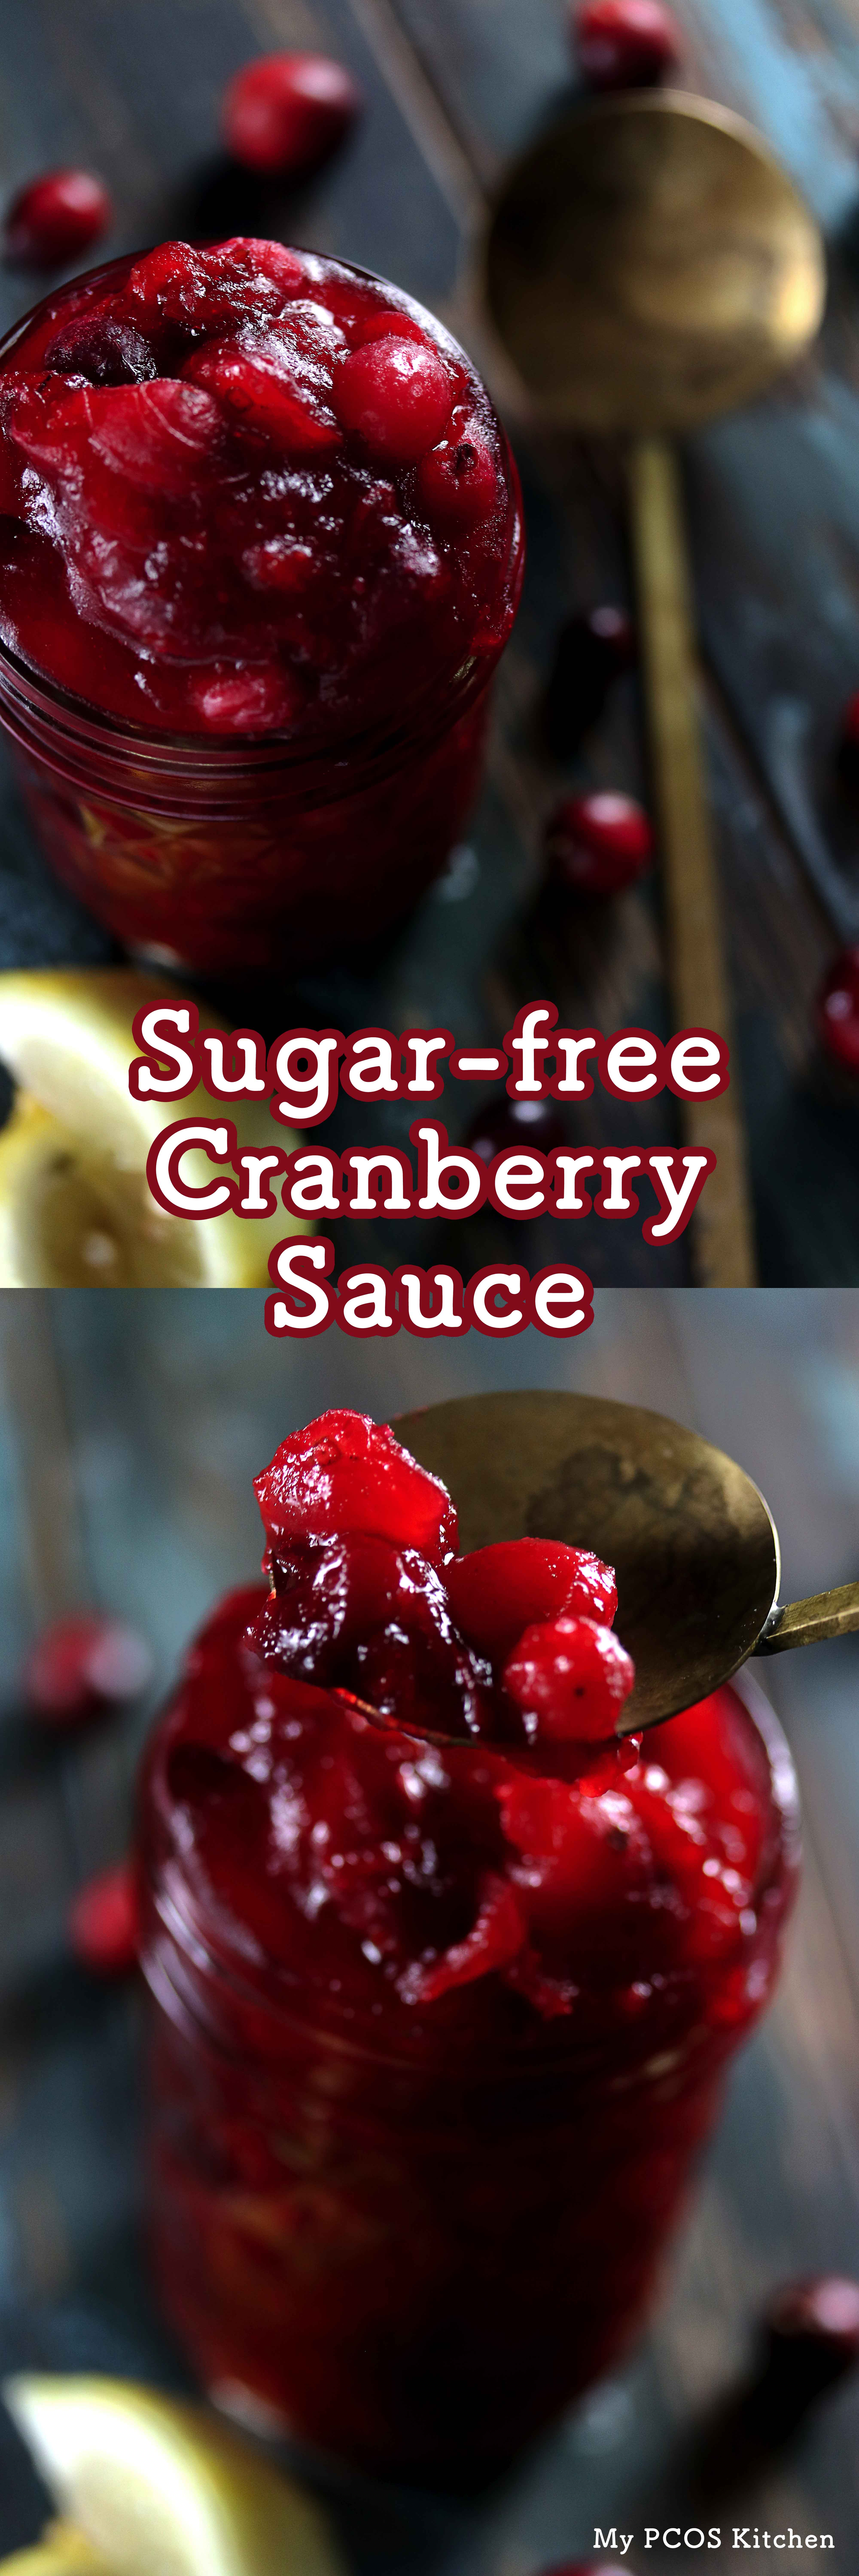 My PCOS Kitchen - Sugar-free Low Carb Cranberry Sauce - This low carb and keto cranberry sauce is sweetened with stevia and erythritol with a splash of lemon zest!  #sugarfree #lowcarb #keto #thanksgiving #cranberrysauce #stevia